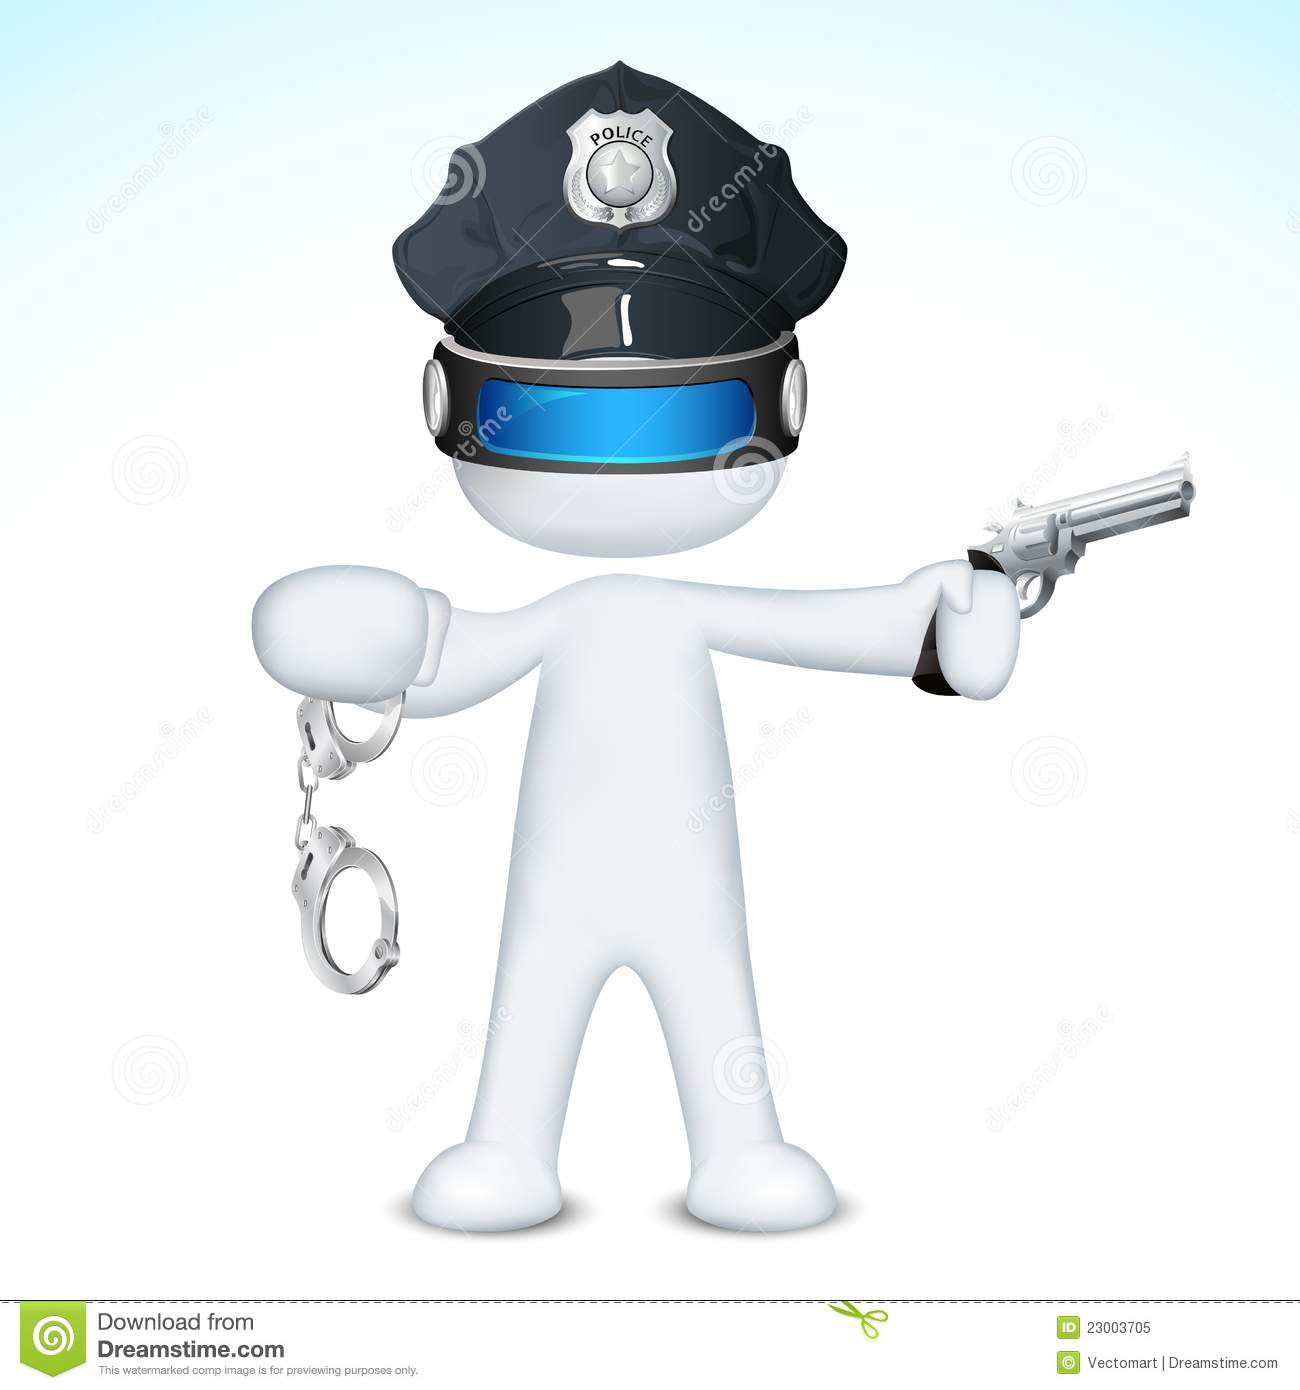 Illustration of 3d police man in vector fully scalable holding pistol.